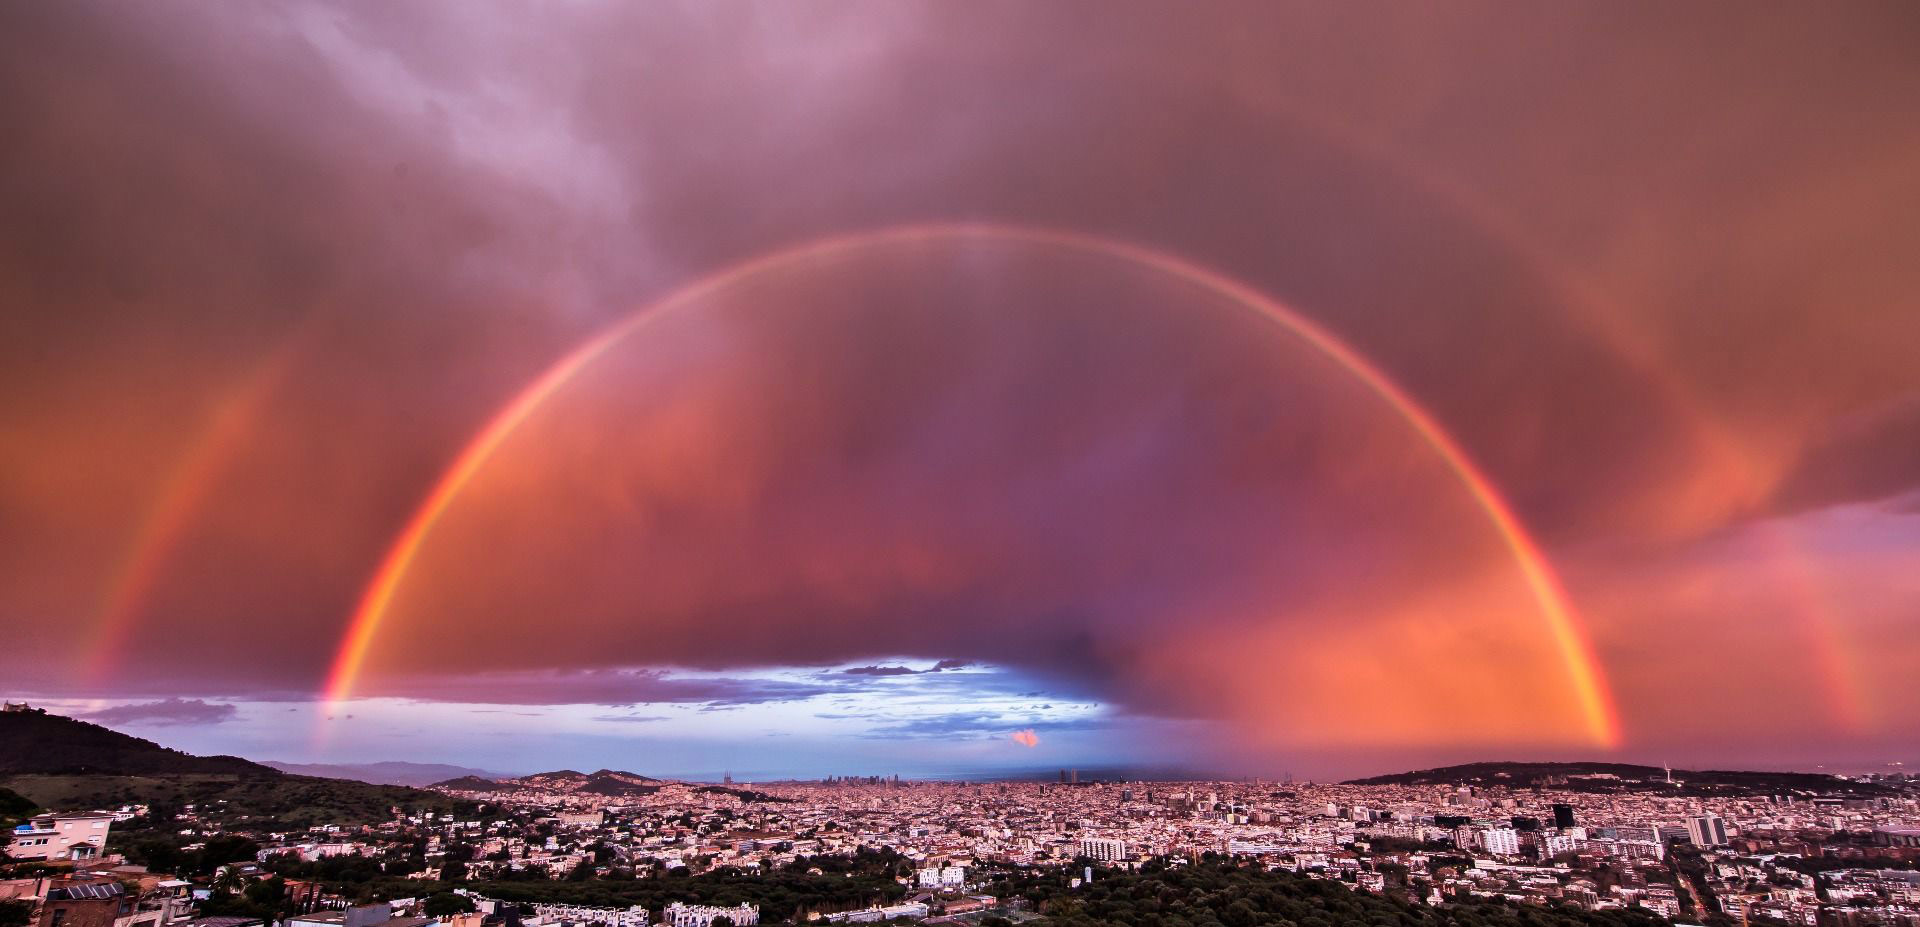 Doble Arco Iris sobre Barcelona al atardecer, © Carlos Castillejo, Weather Photographer of the Year